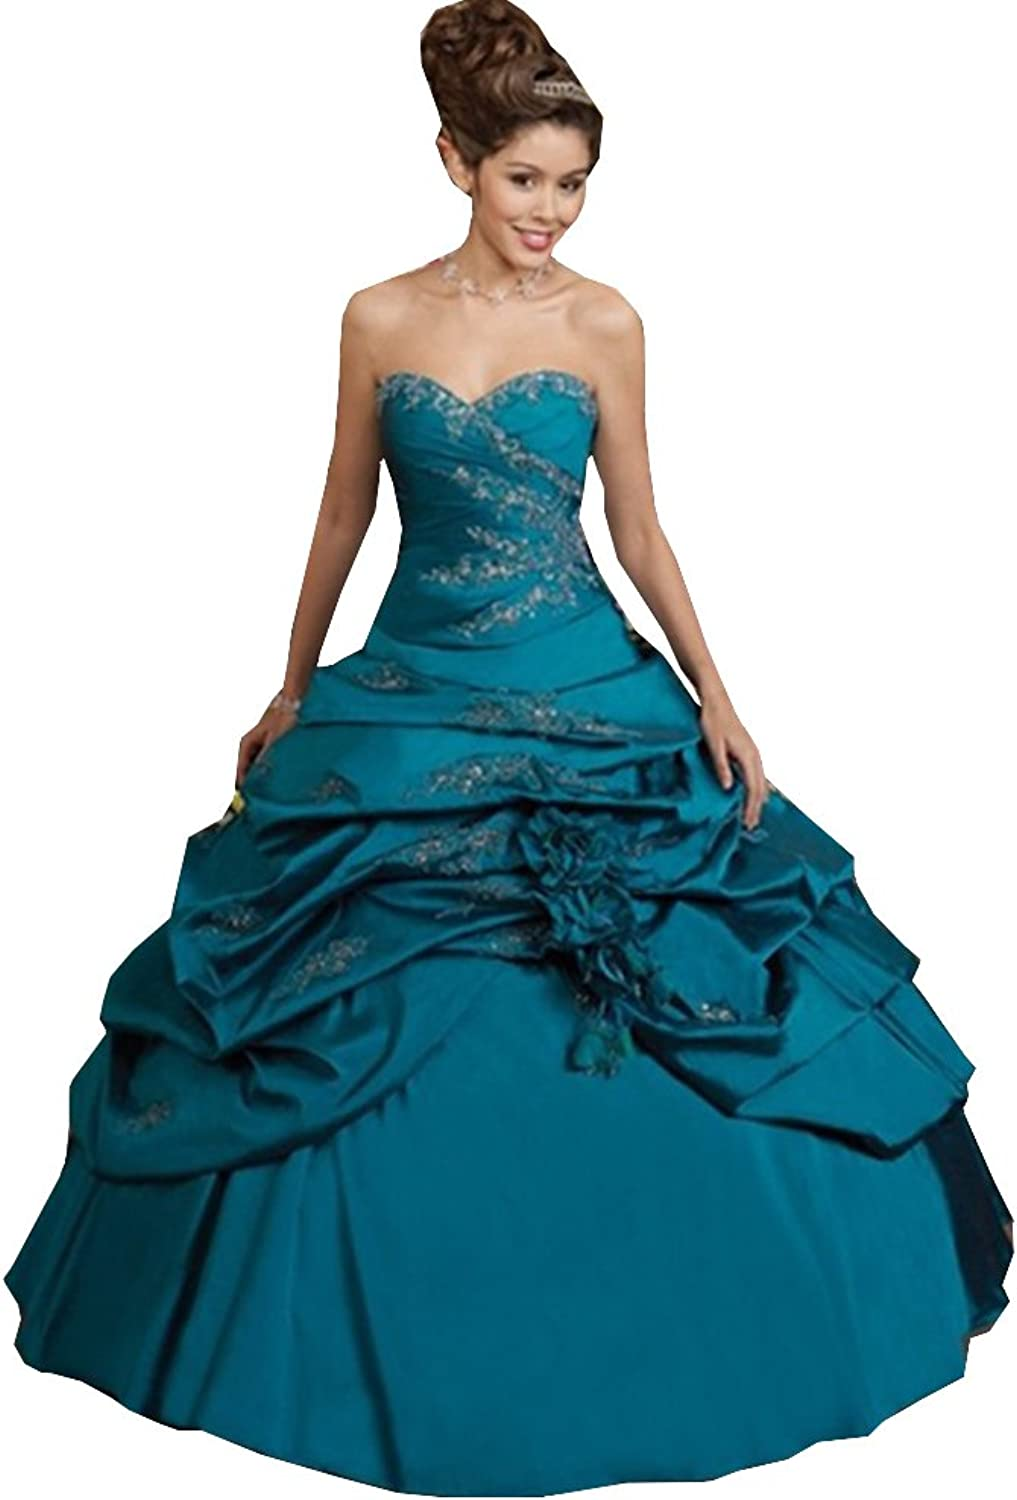 Lavaring Women's Sweetheart Pleat Applique Taffeta Backless Laceup Ball Gown